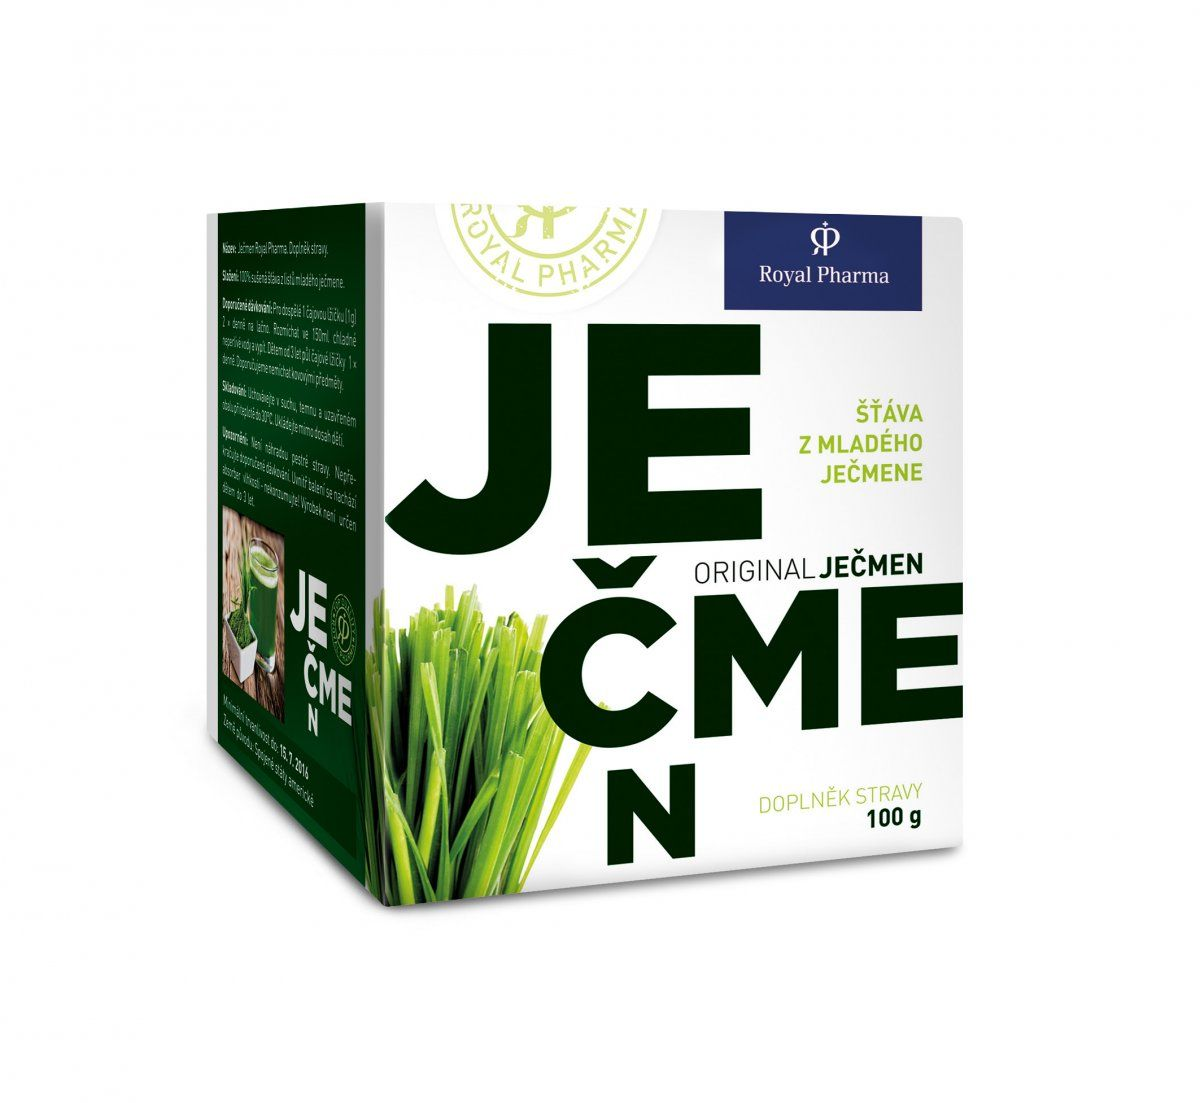 Ječmen Royal Pharma Gramáž: 100g